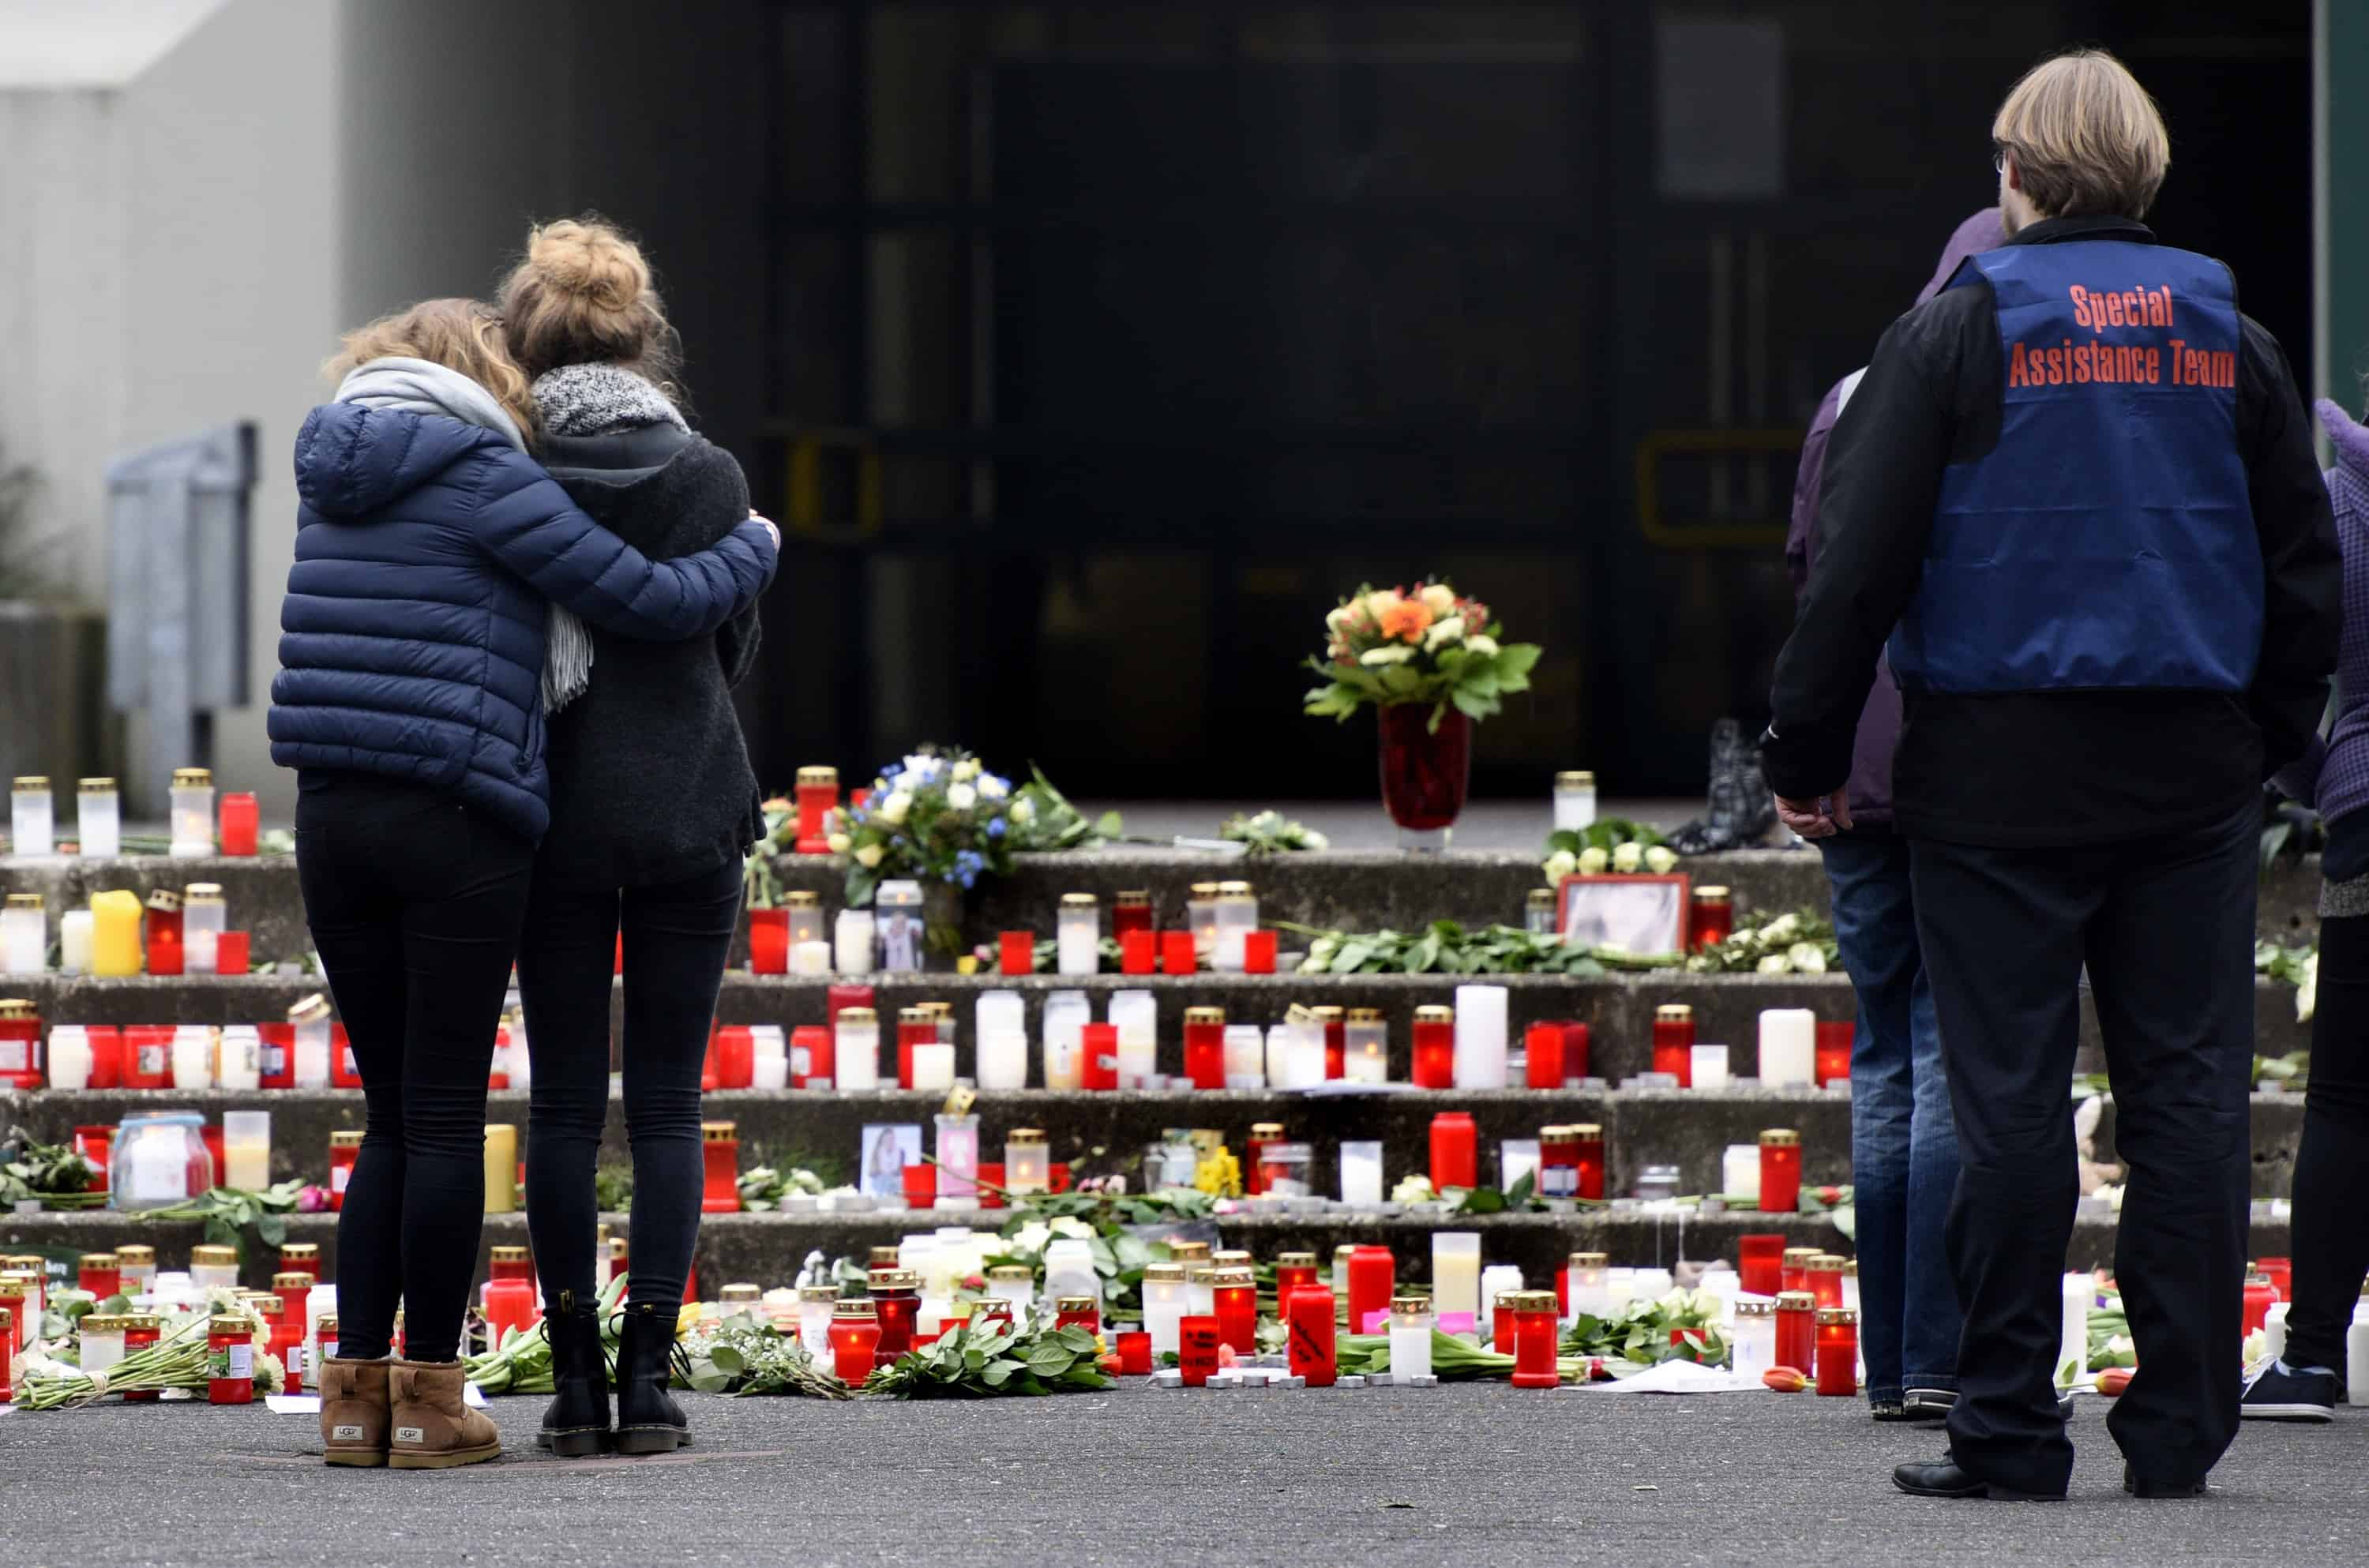 Students gather in front of memorial of flowers and candles at the Joseph-Koenig-Gymnasium secondary school in Haltern am See, western Germany on March 25, 2015. Sixteen German teenagers and two teachers on a school exchange trip were assumed to be among the 150 dead in the crash of a passenger jet in the French Alps, officials said.